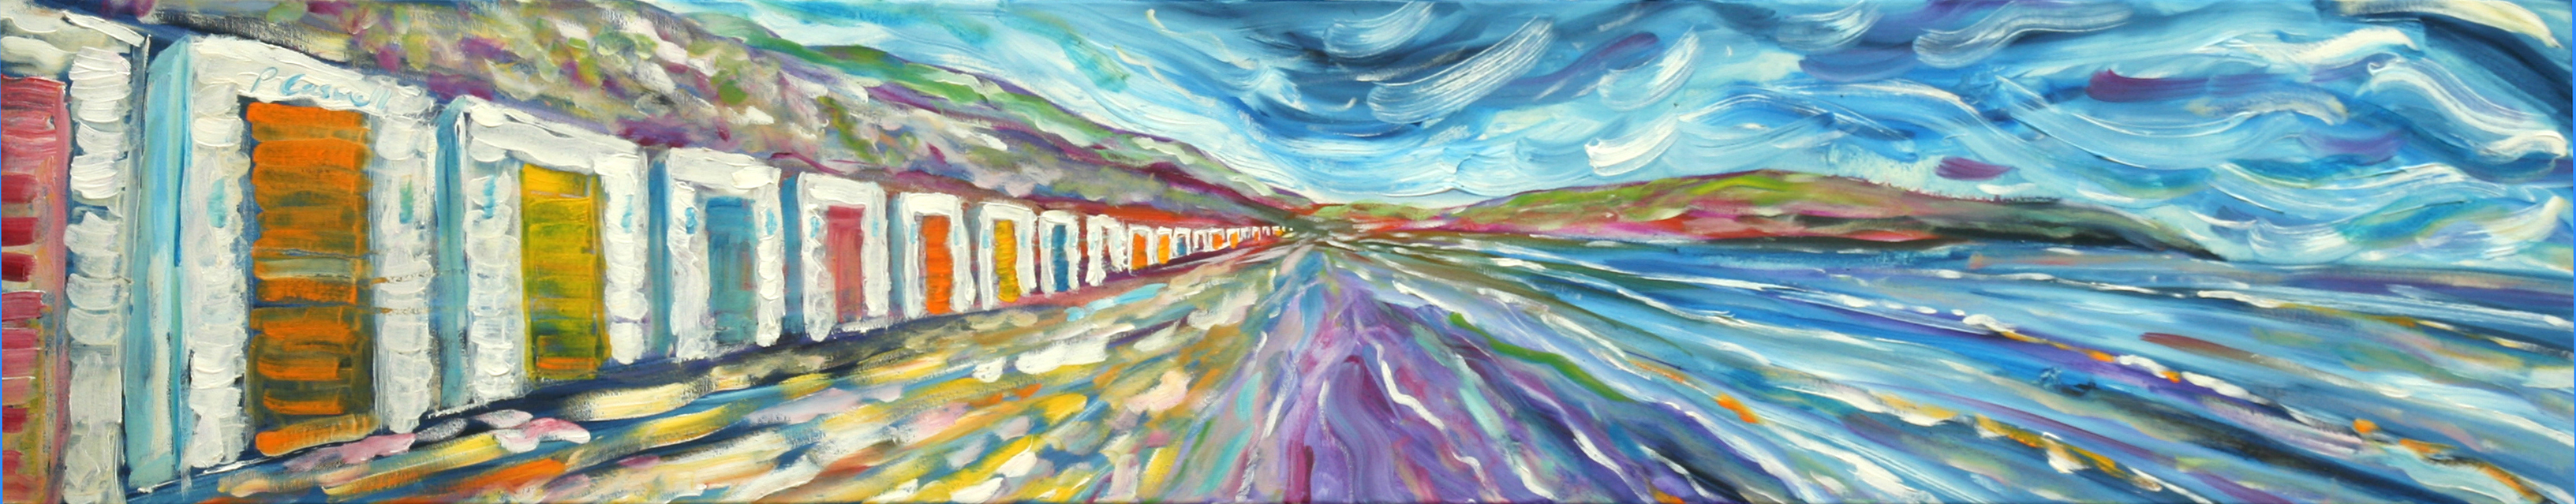 Woolacombe Beach Huts Paintings